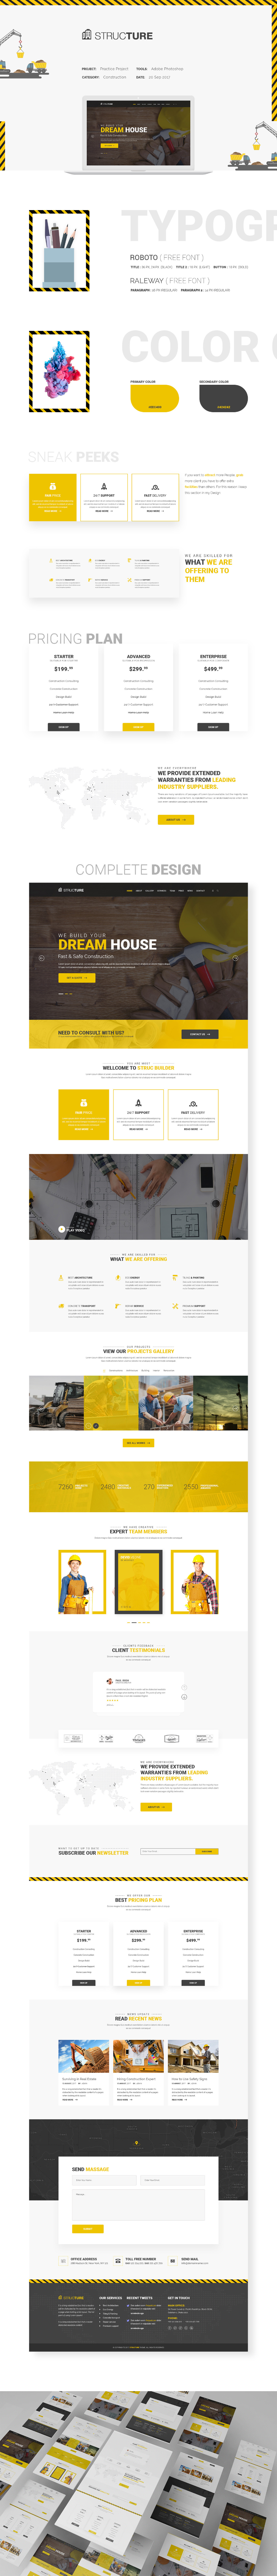 Structure Free PSD Template